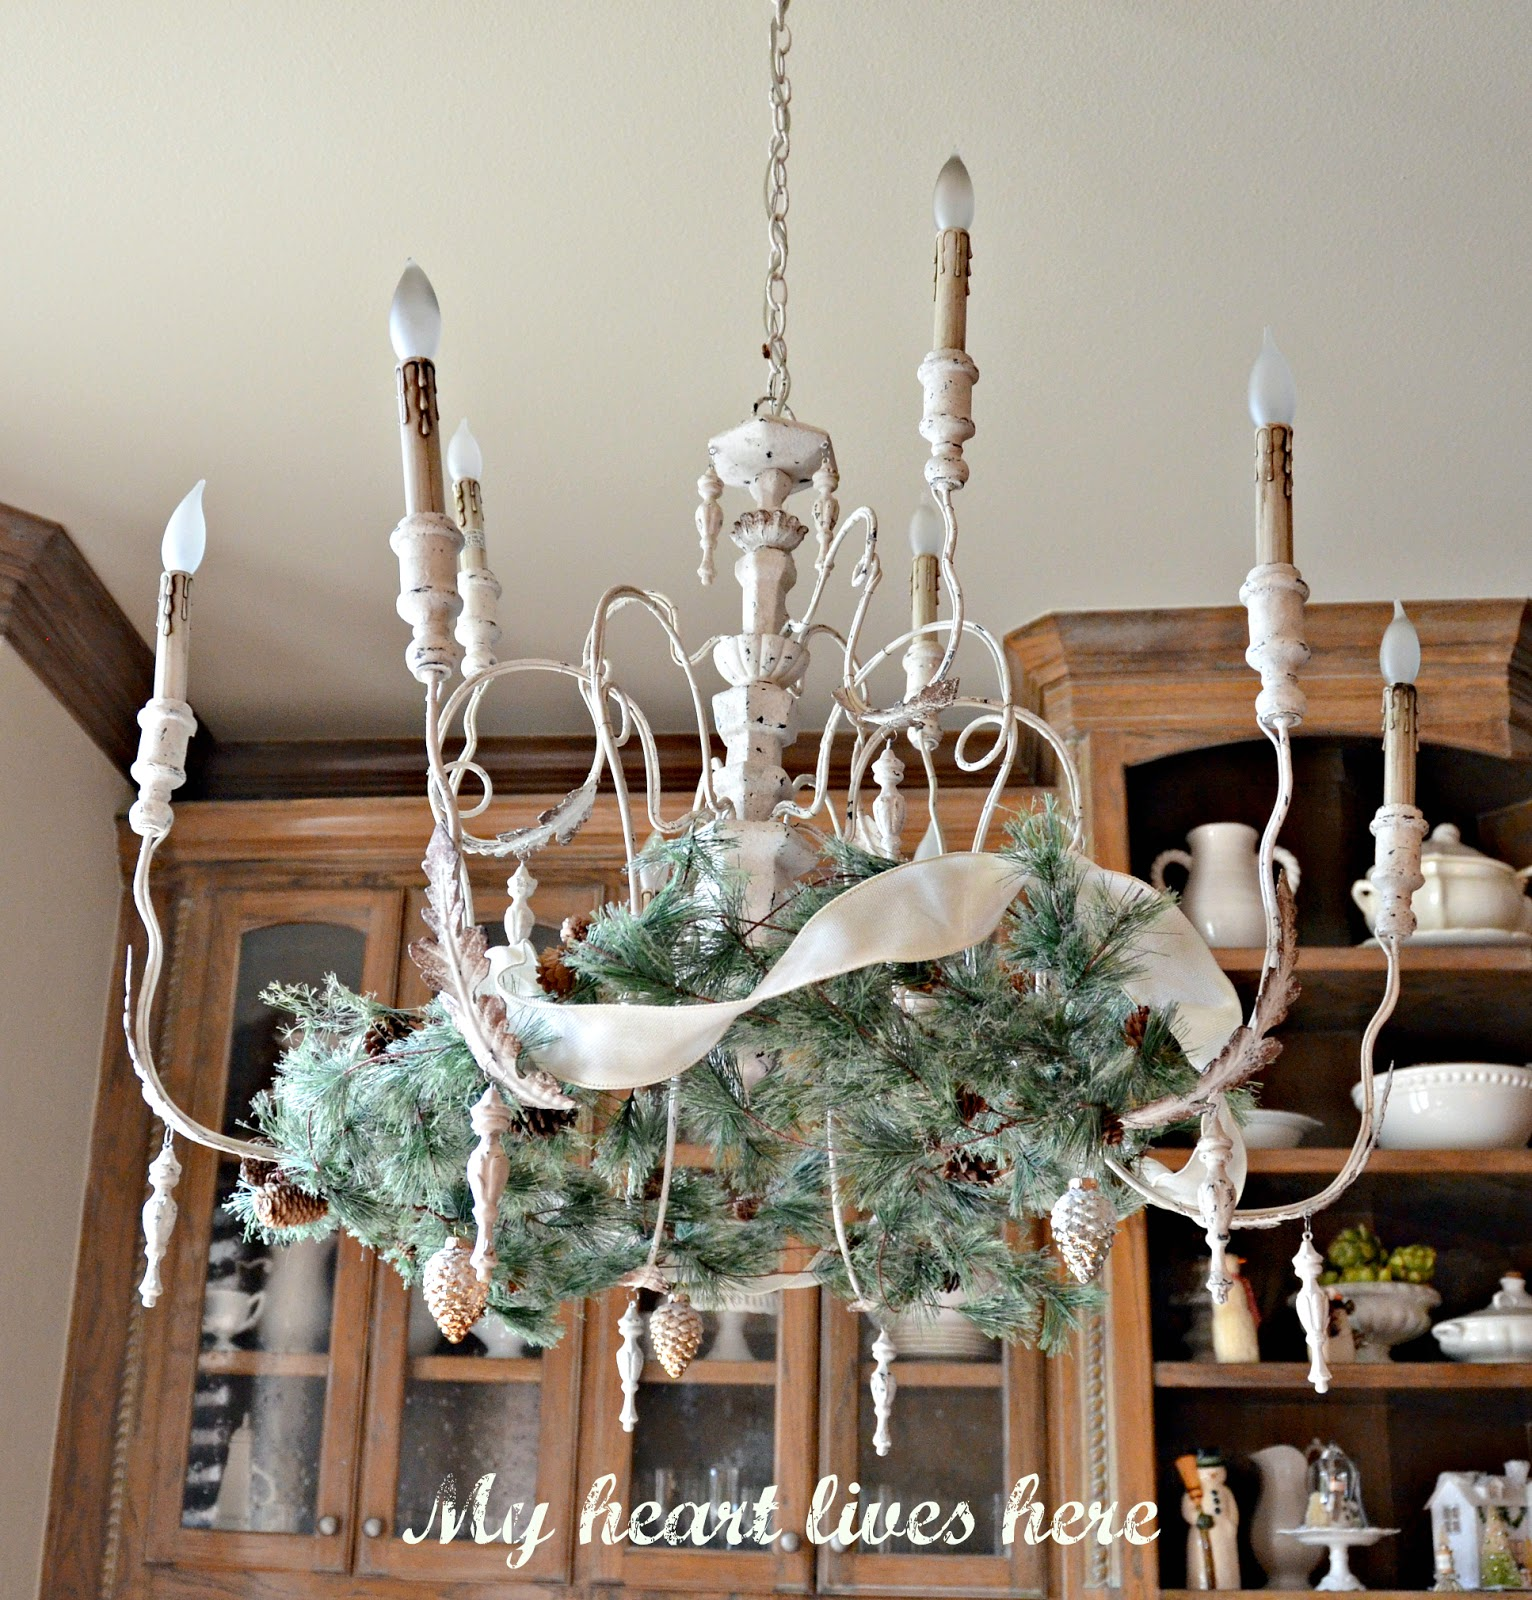 I Ve Thought About Decking This Chandelier Out For The Holidays More Than Once